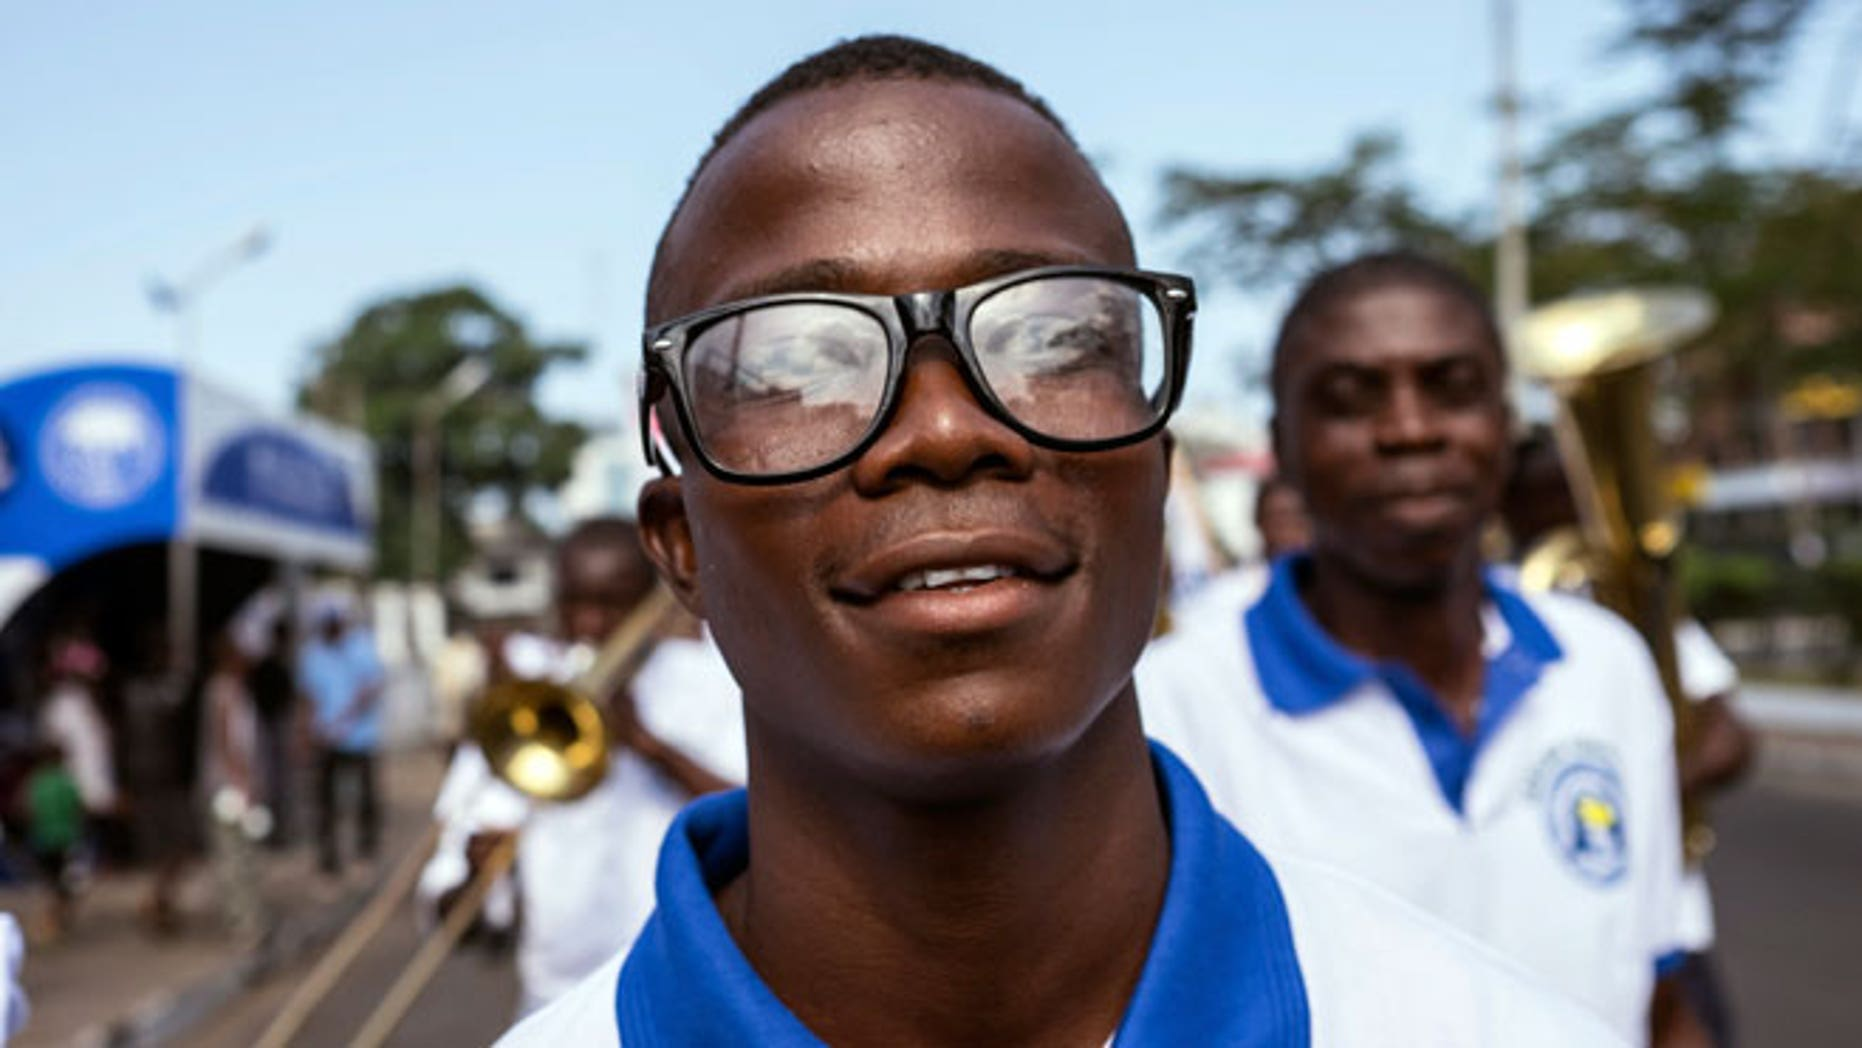 Ebola survivor Musa Pabai walks in an Ebola Survivors Valentine's Day parade in Monrovia, February 14, 2015.